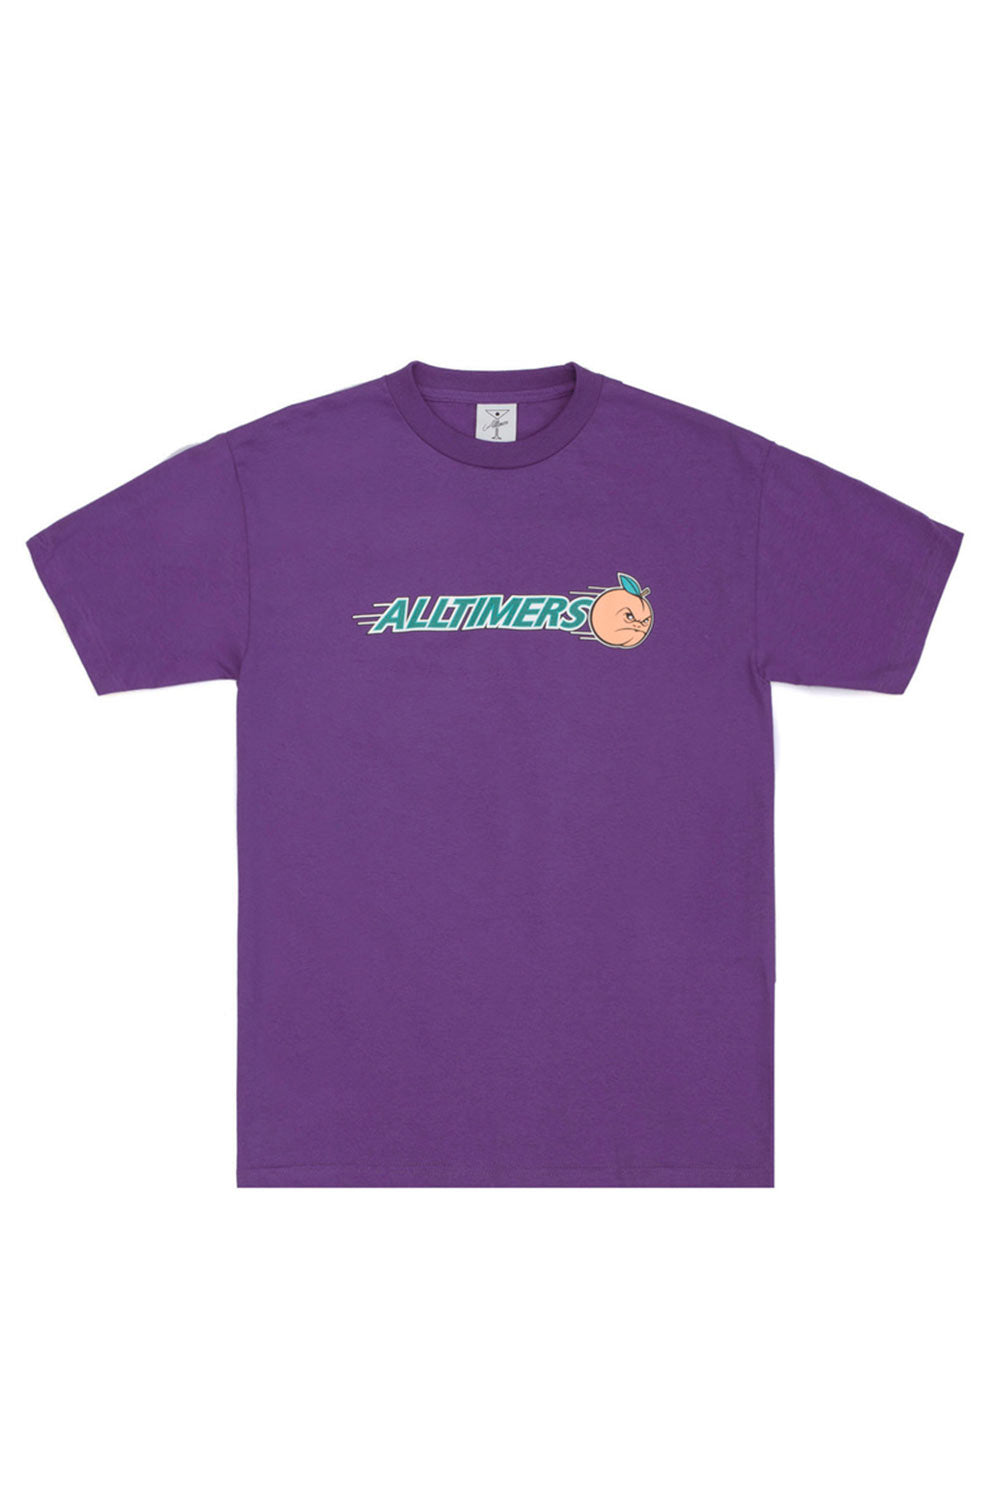 Alltimers Mad Tee - Purple